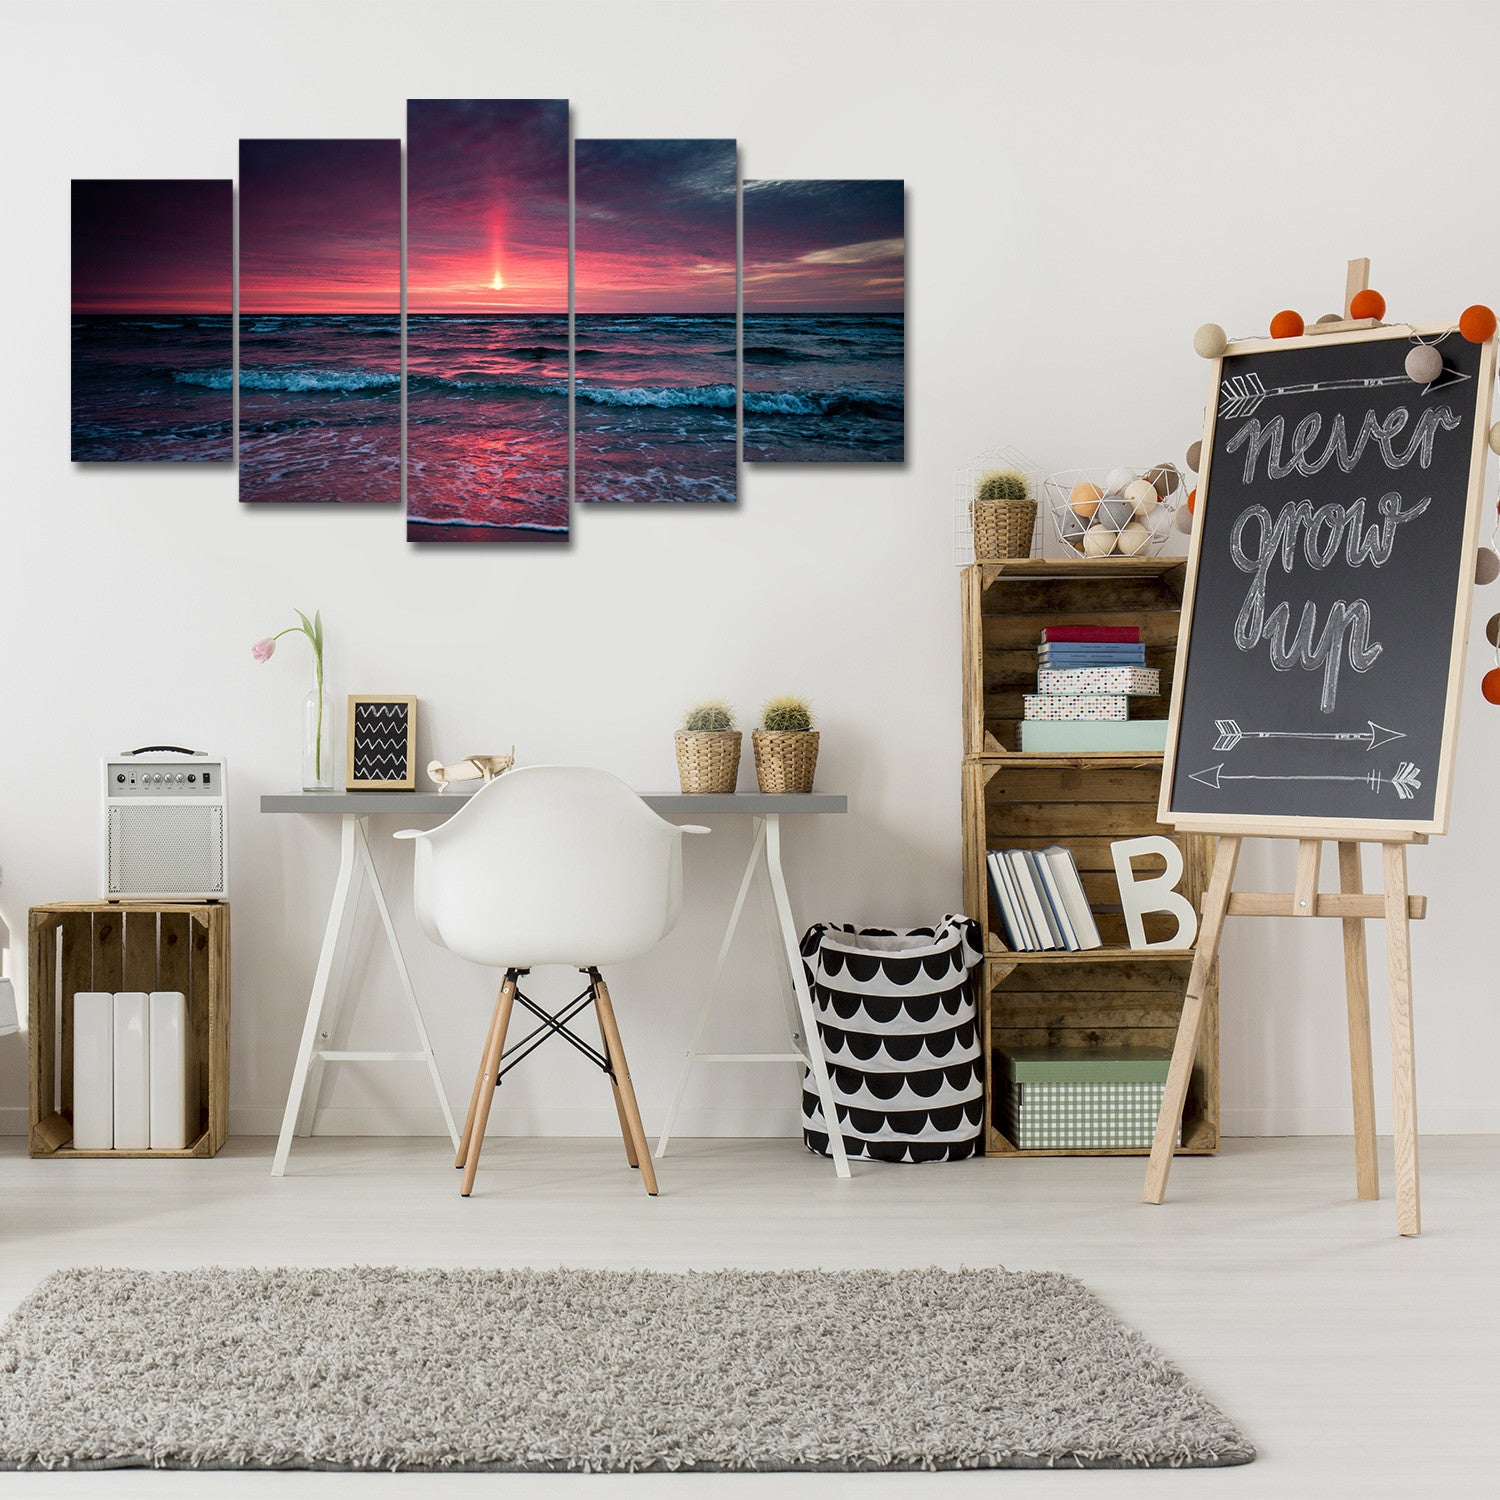 Red Sun 5 Piece Canvas